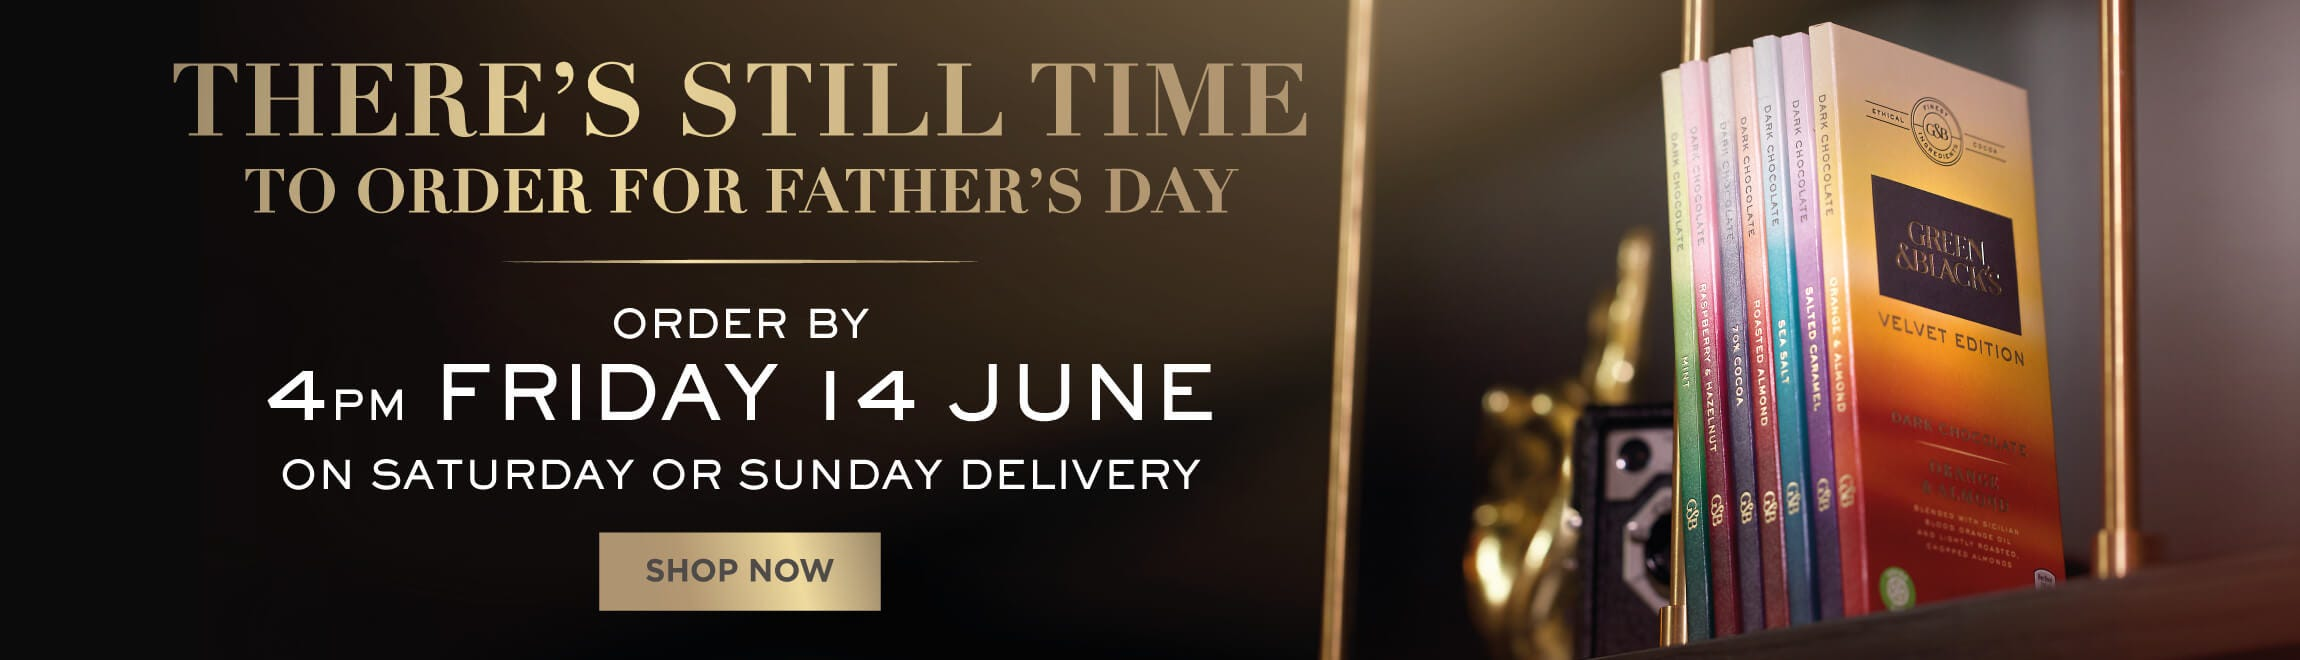 Still time to order for Father's Day